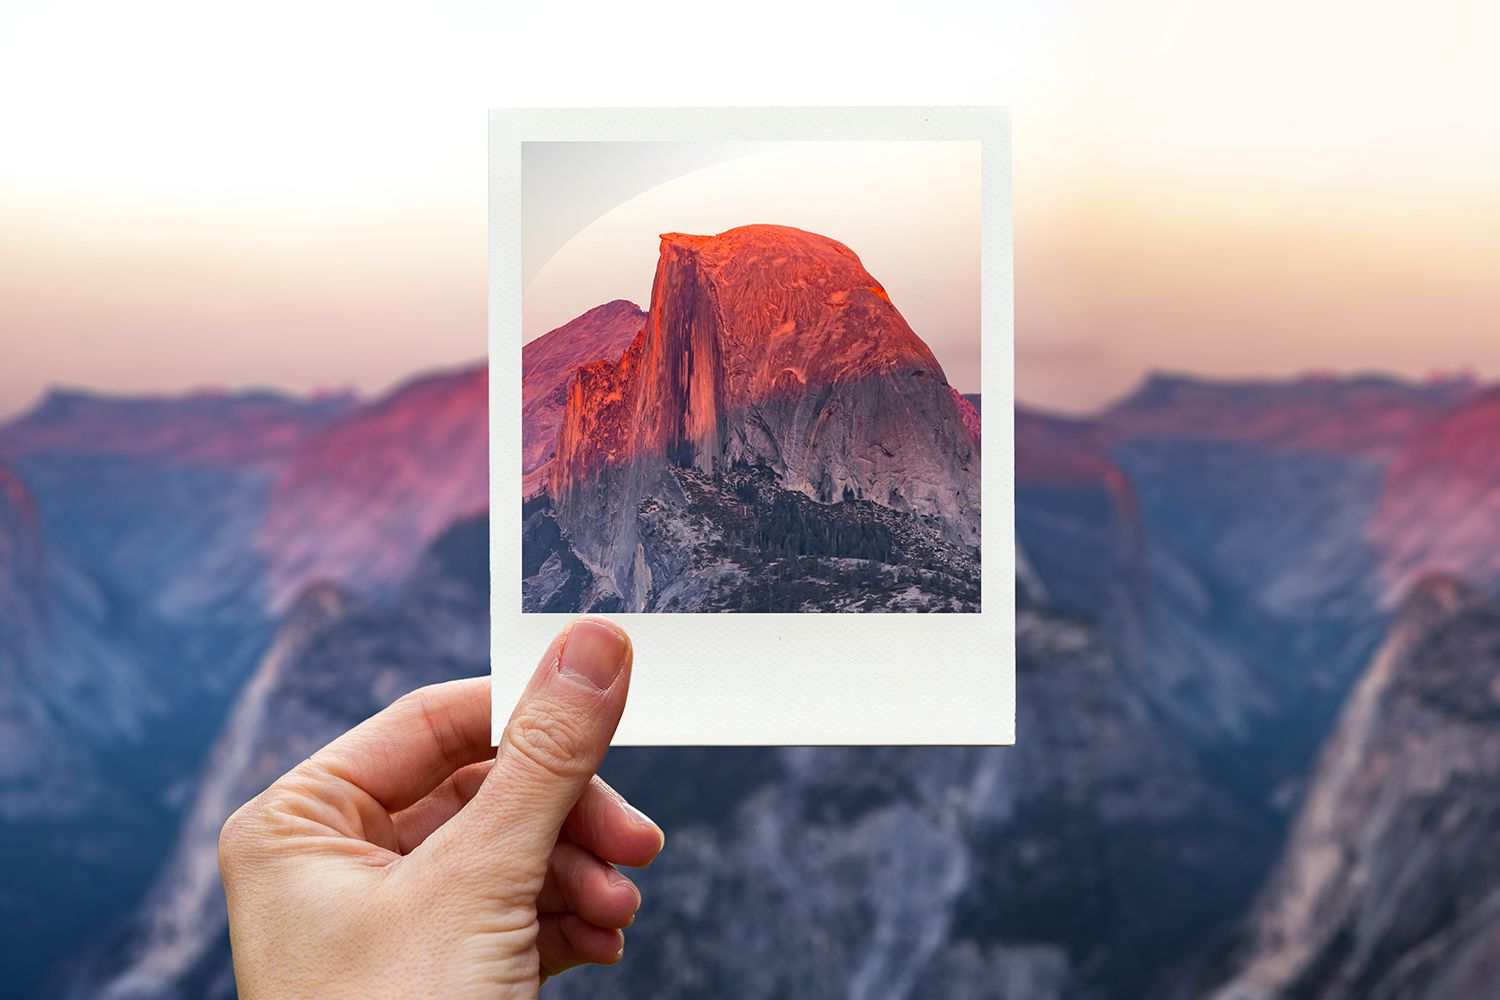 Framing the Half Dome in Yosemite during sunset with polaroid picture from personal perspective.